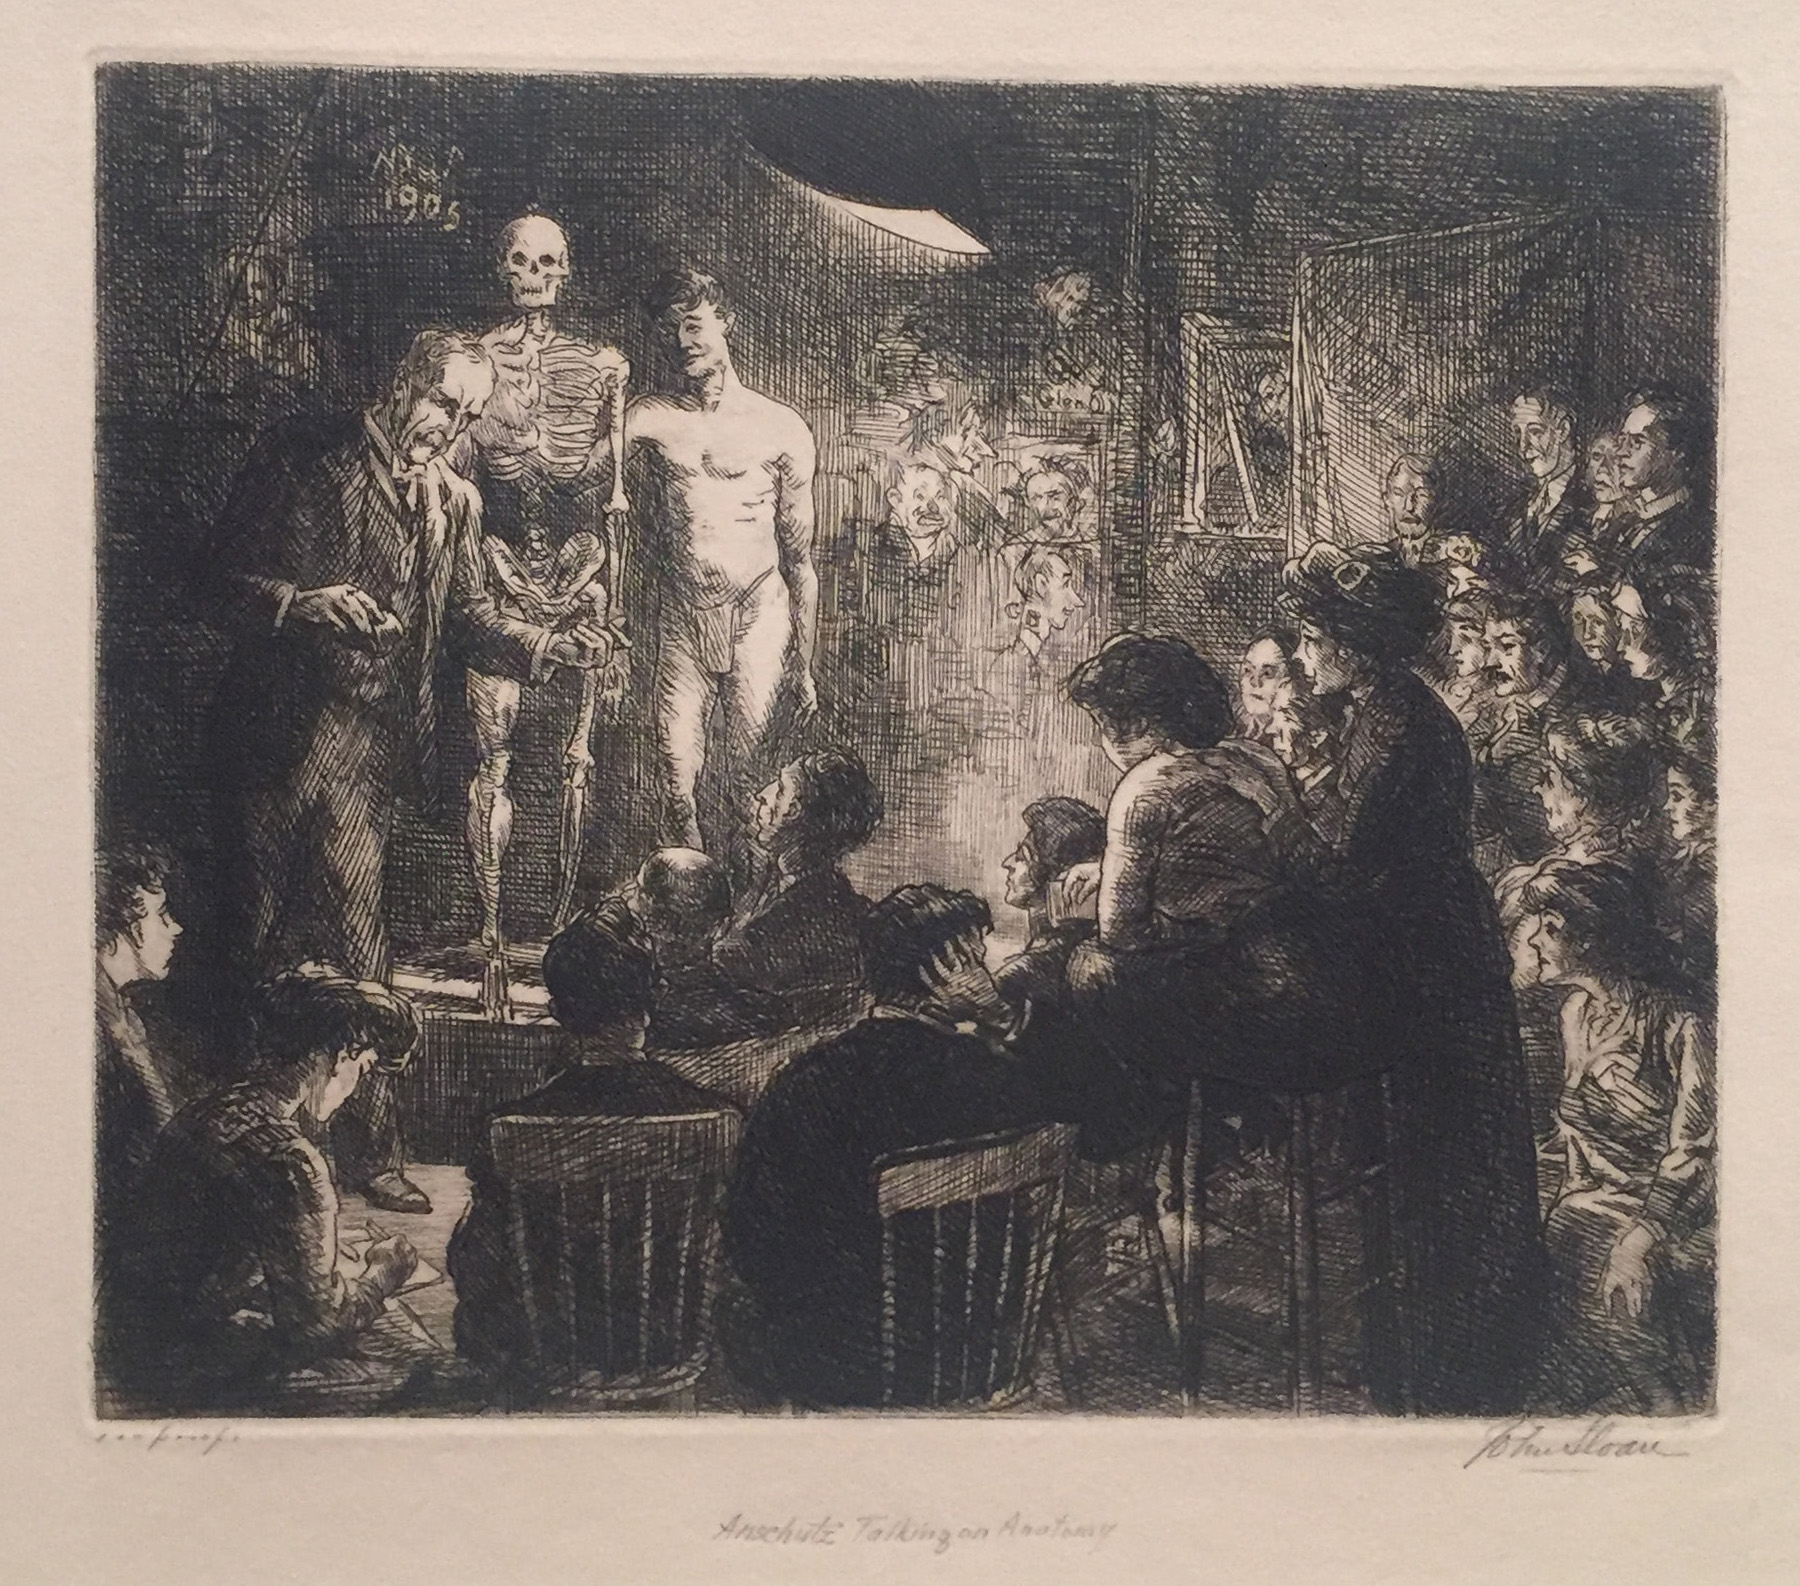 Etching of a man presenting a skeleton and a man in a sheath while a crowd watches